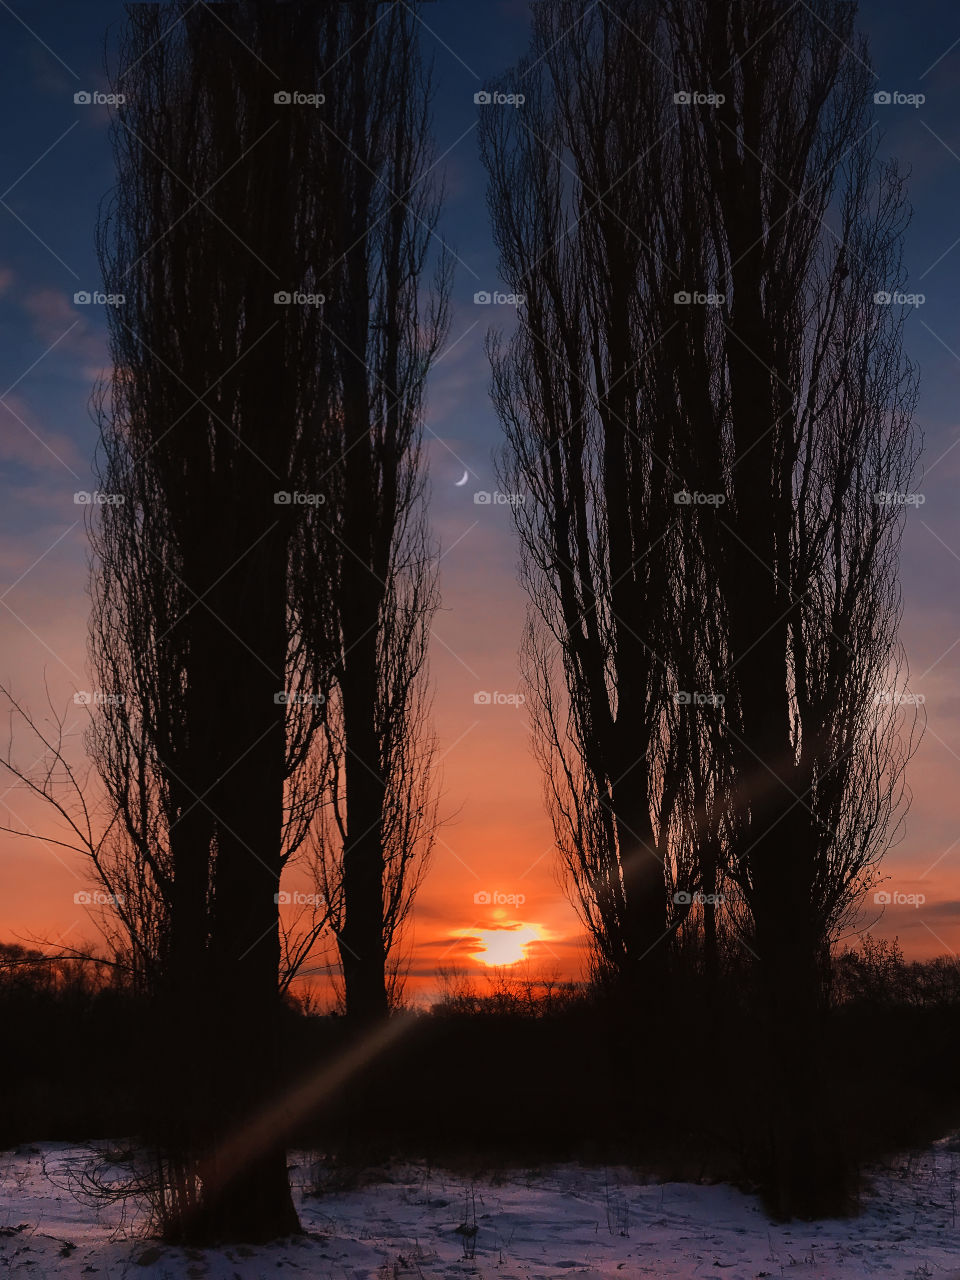 Silhouette of trees on beautiful sunset background in winter